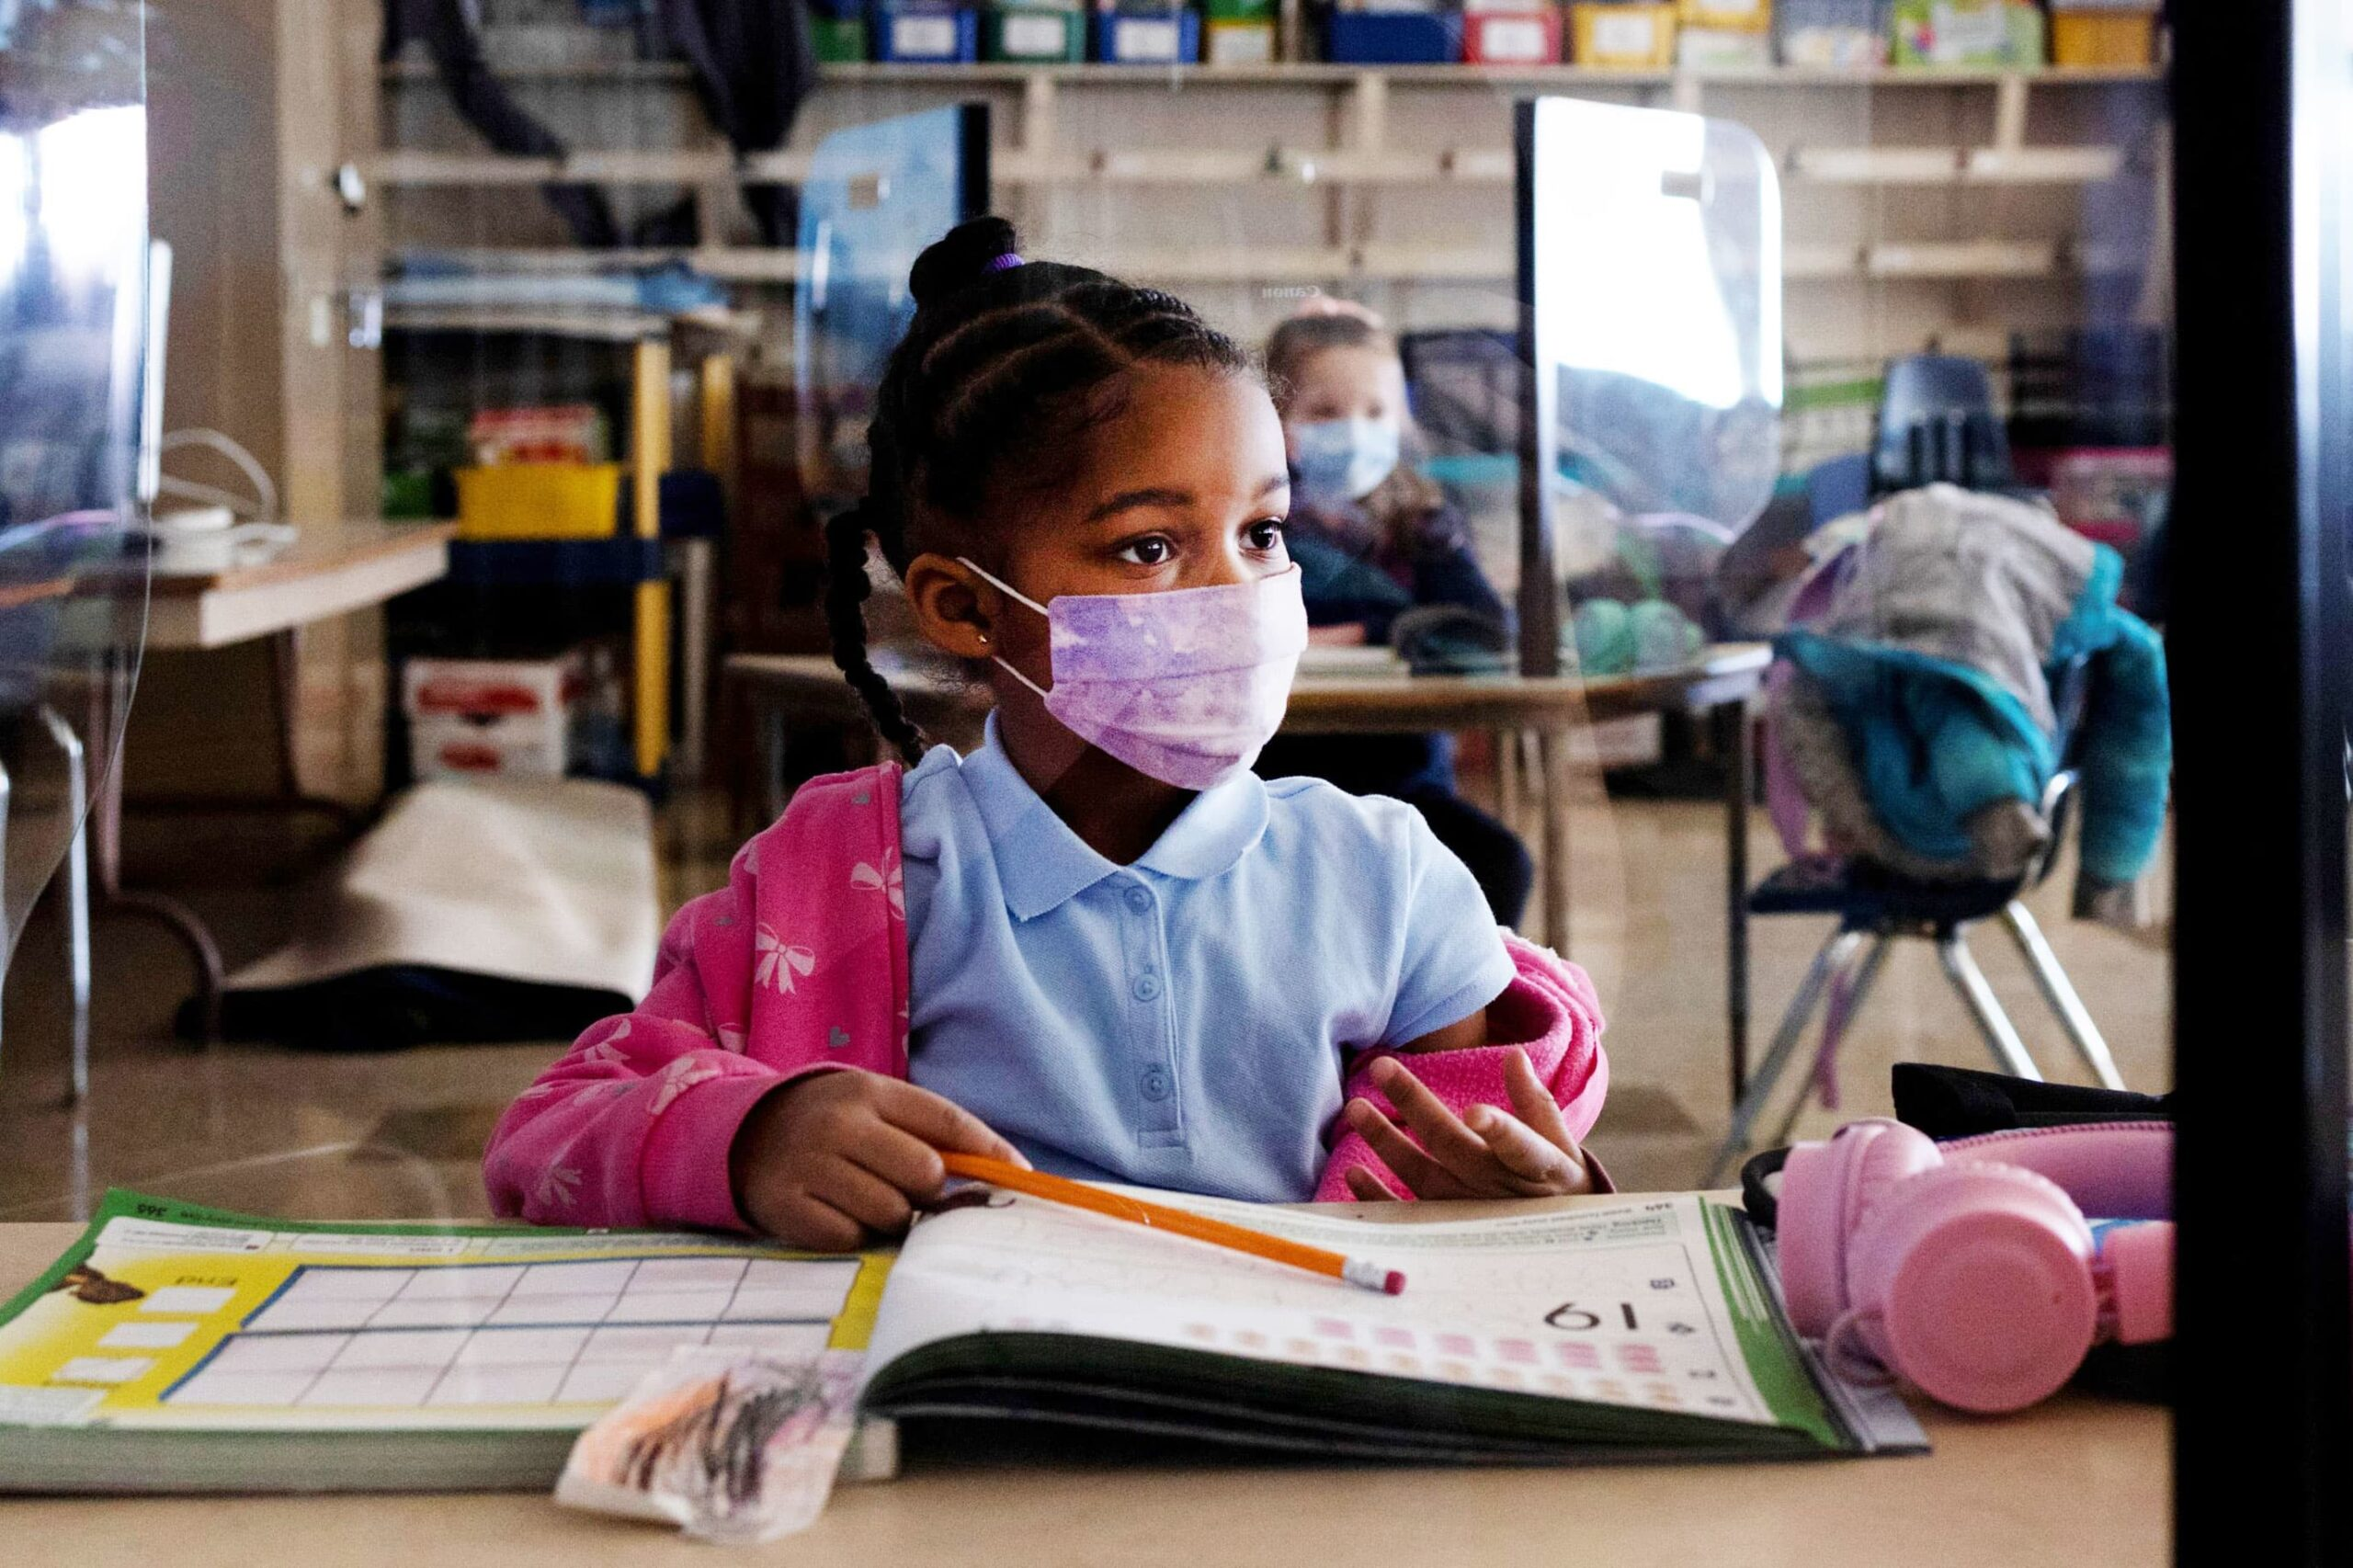 CDC may shorten Covid social distancing advice for schools to 3 feet: director